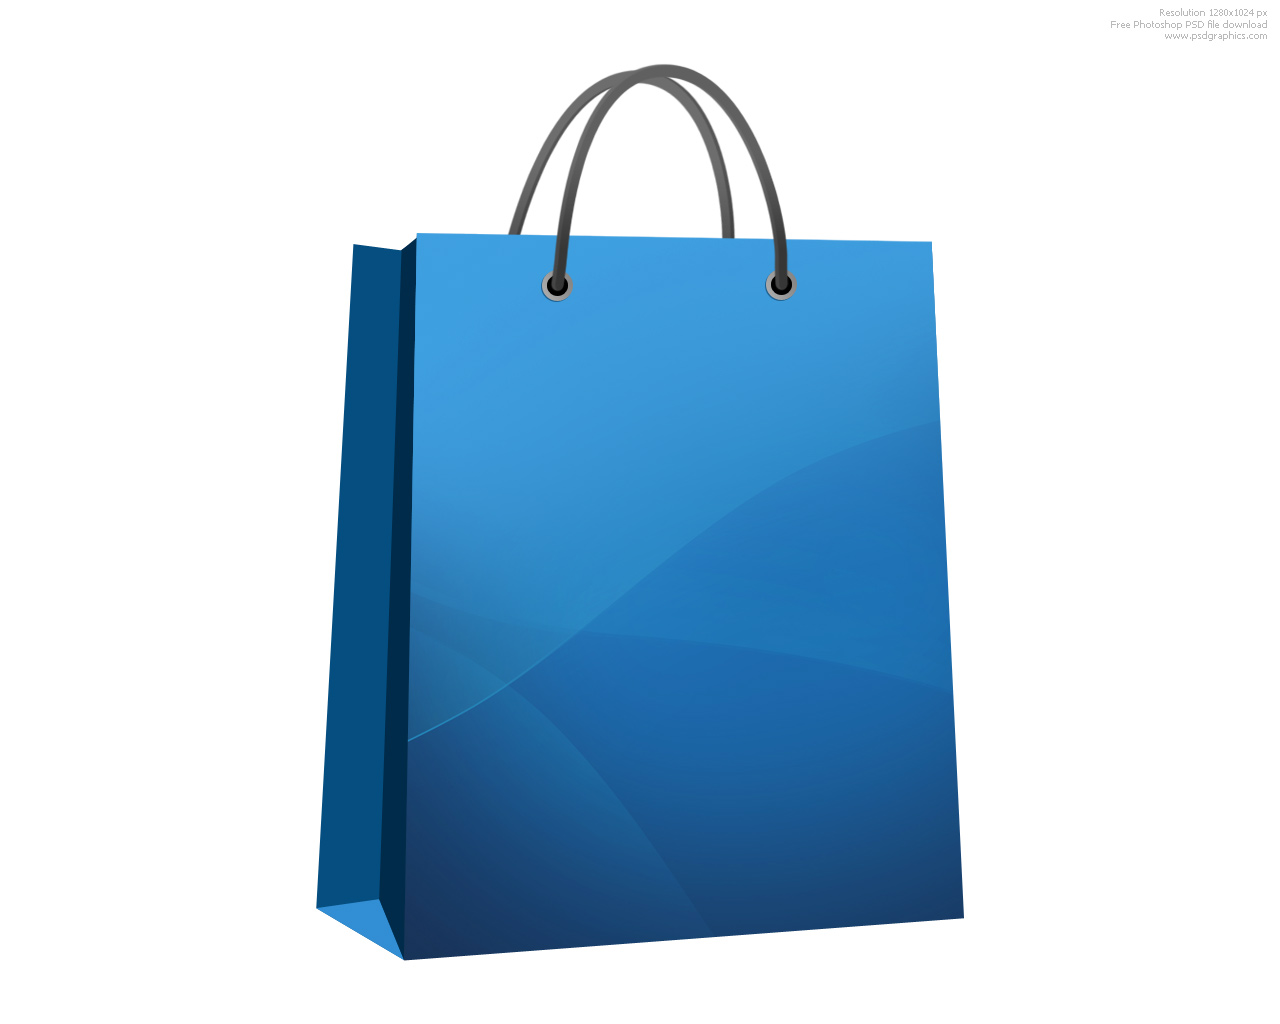 Shopping bag icon | PSDGraphics